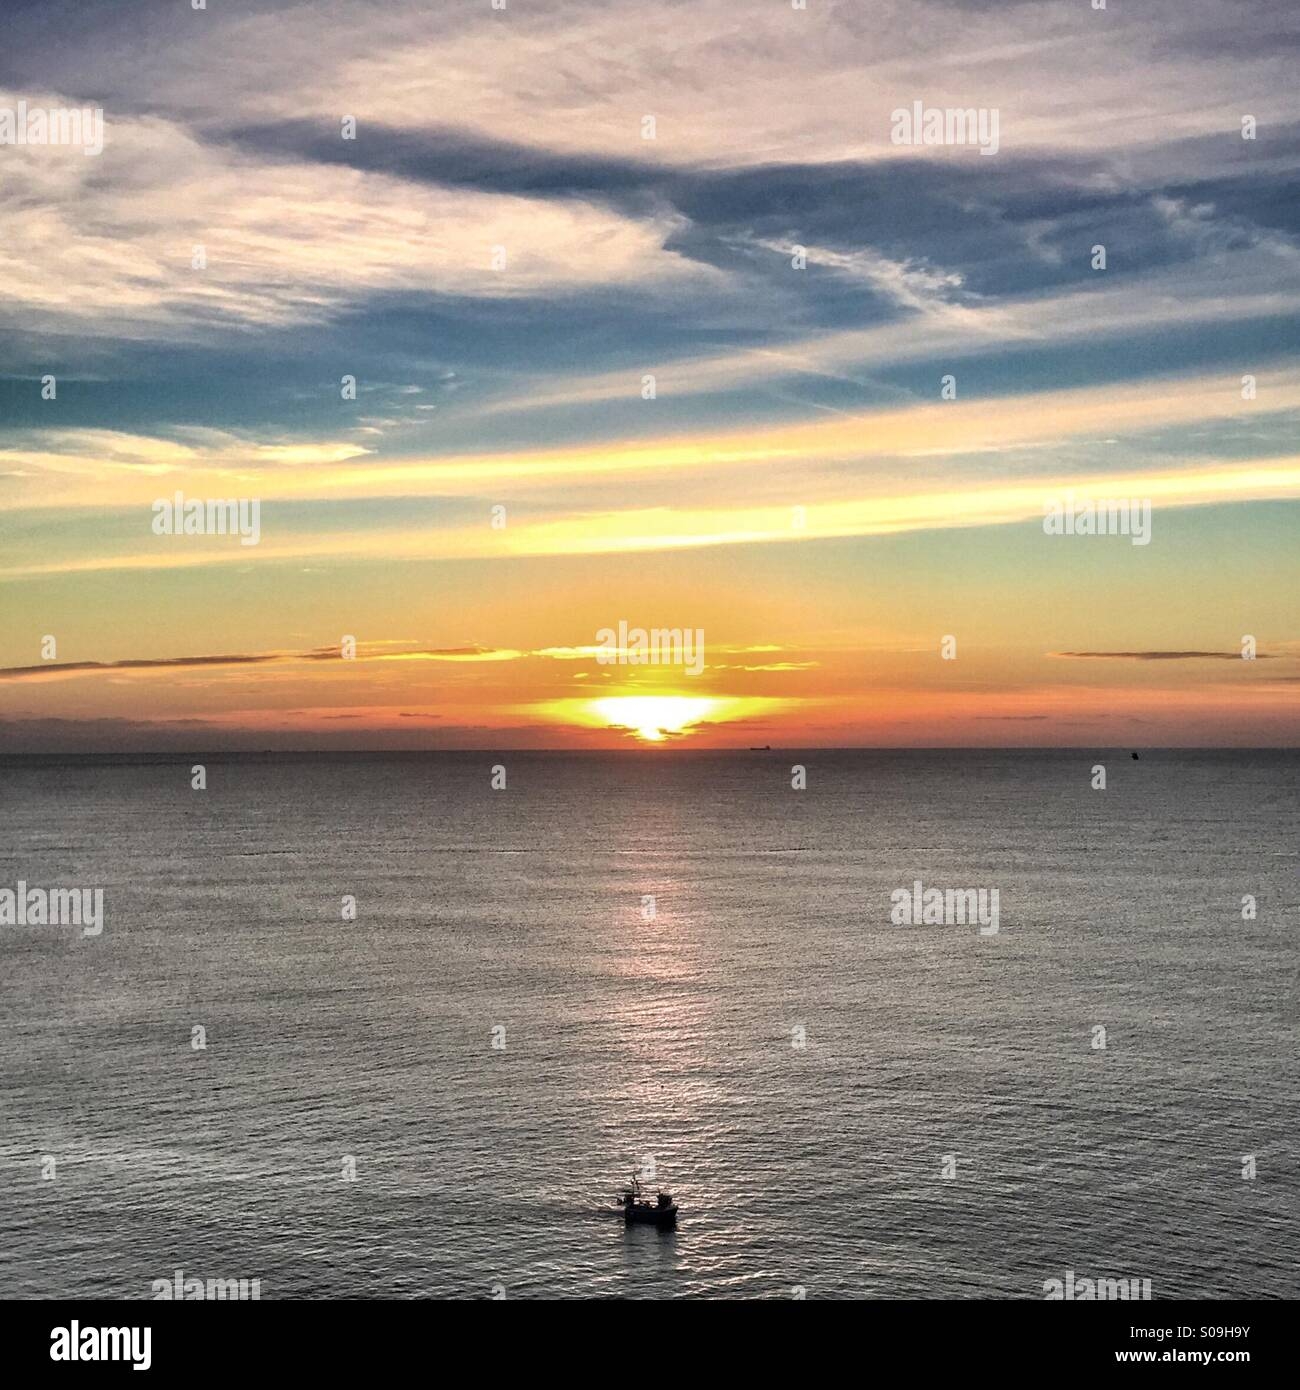 Sunset with lonely fishing boat off coast of Cornwall Stock Photo